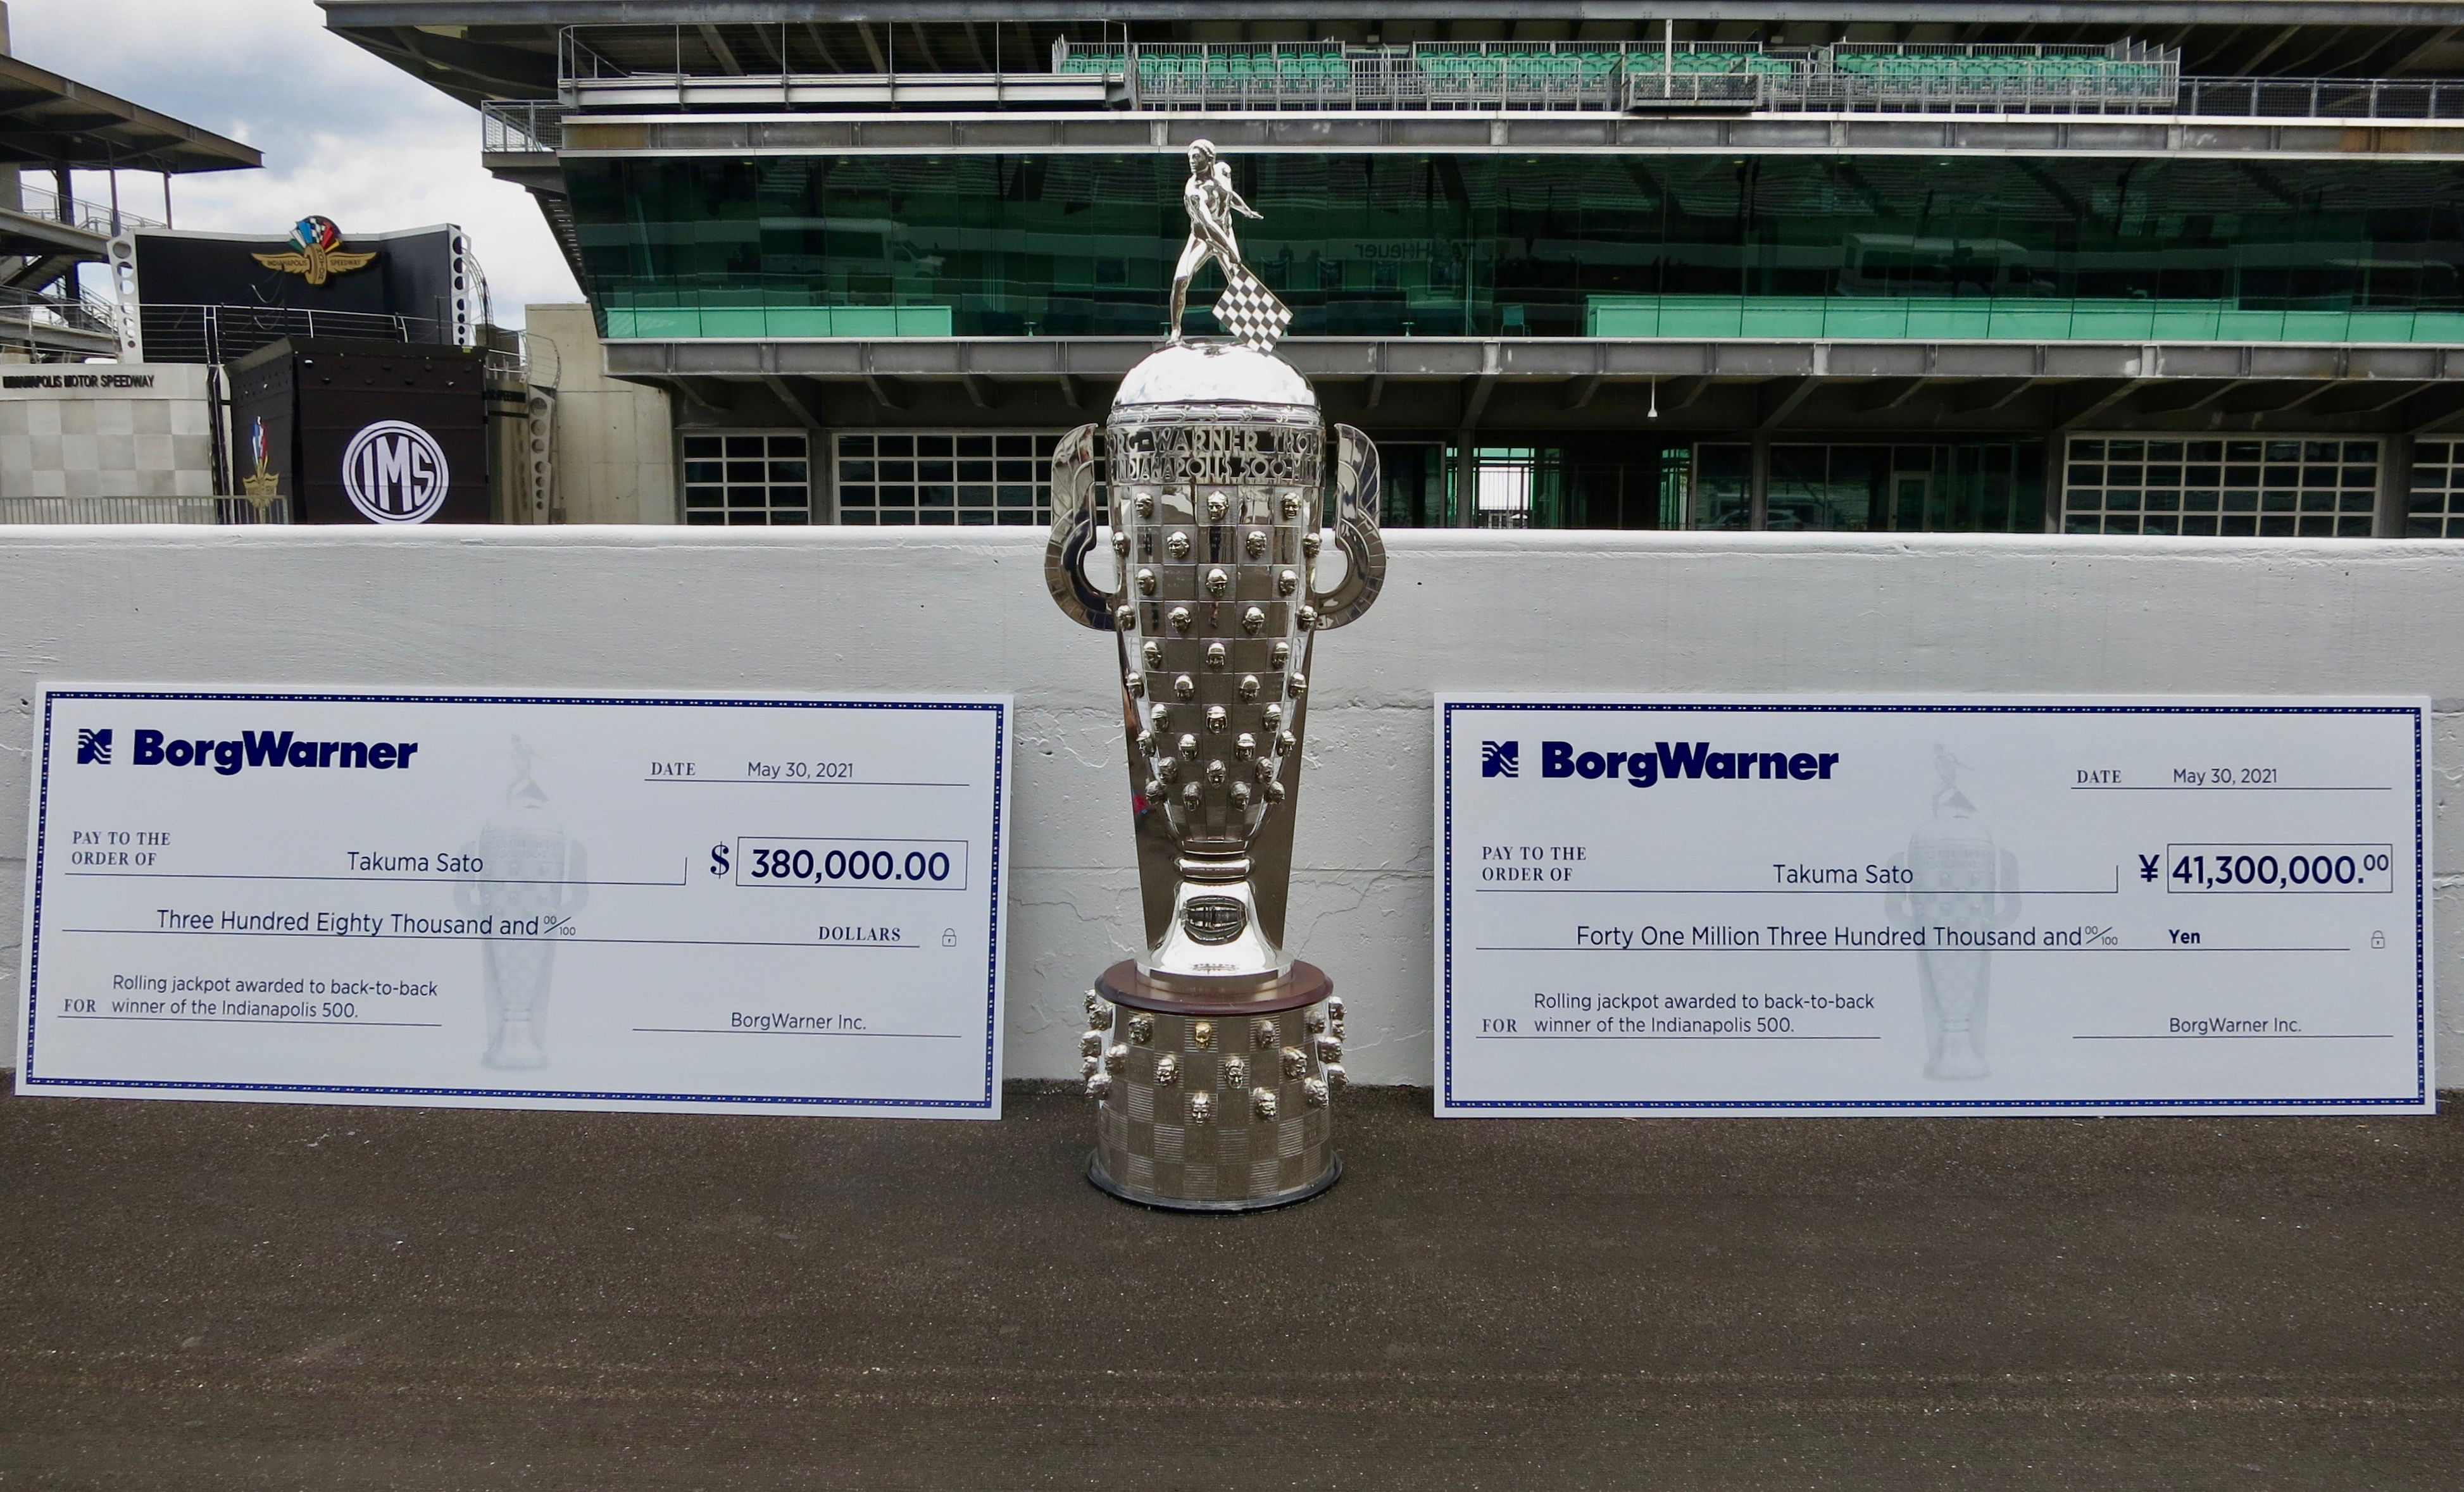 Large silver trophy with two large checks on either side on race track with stands in background